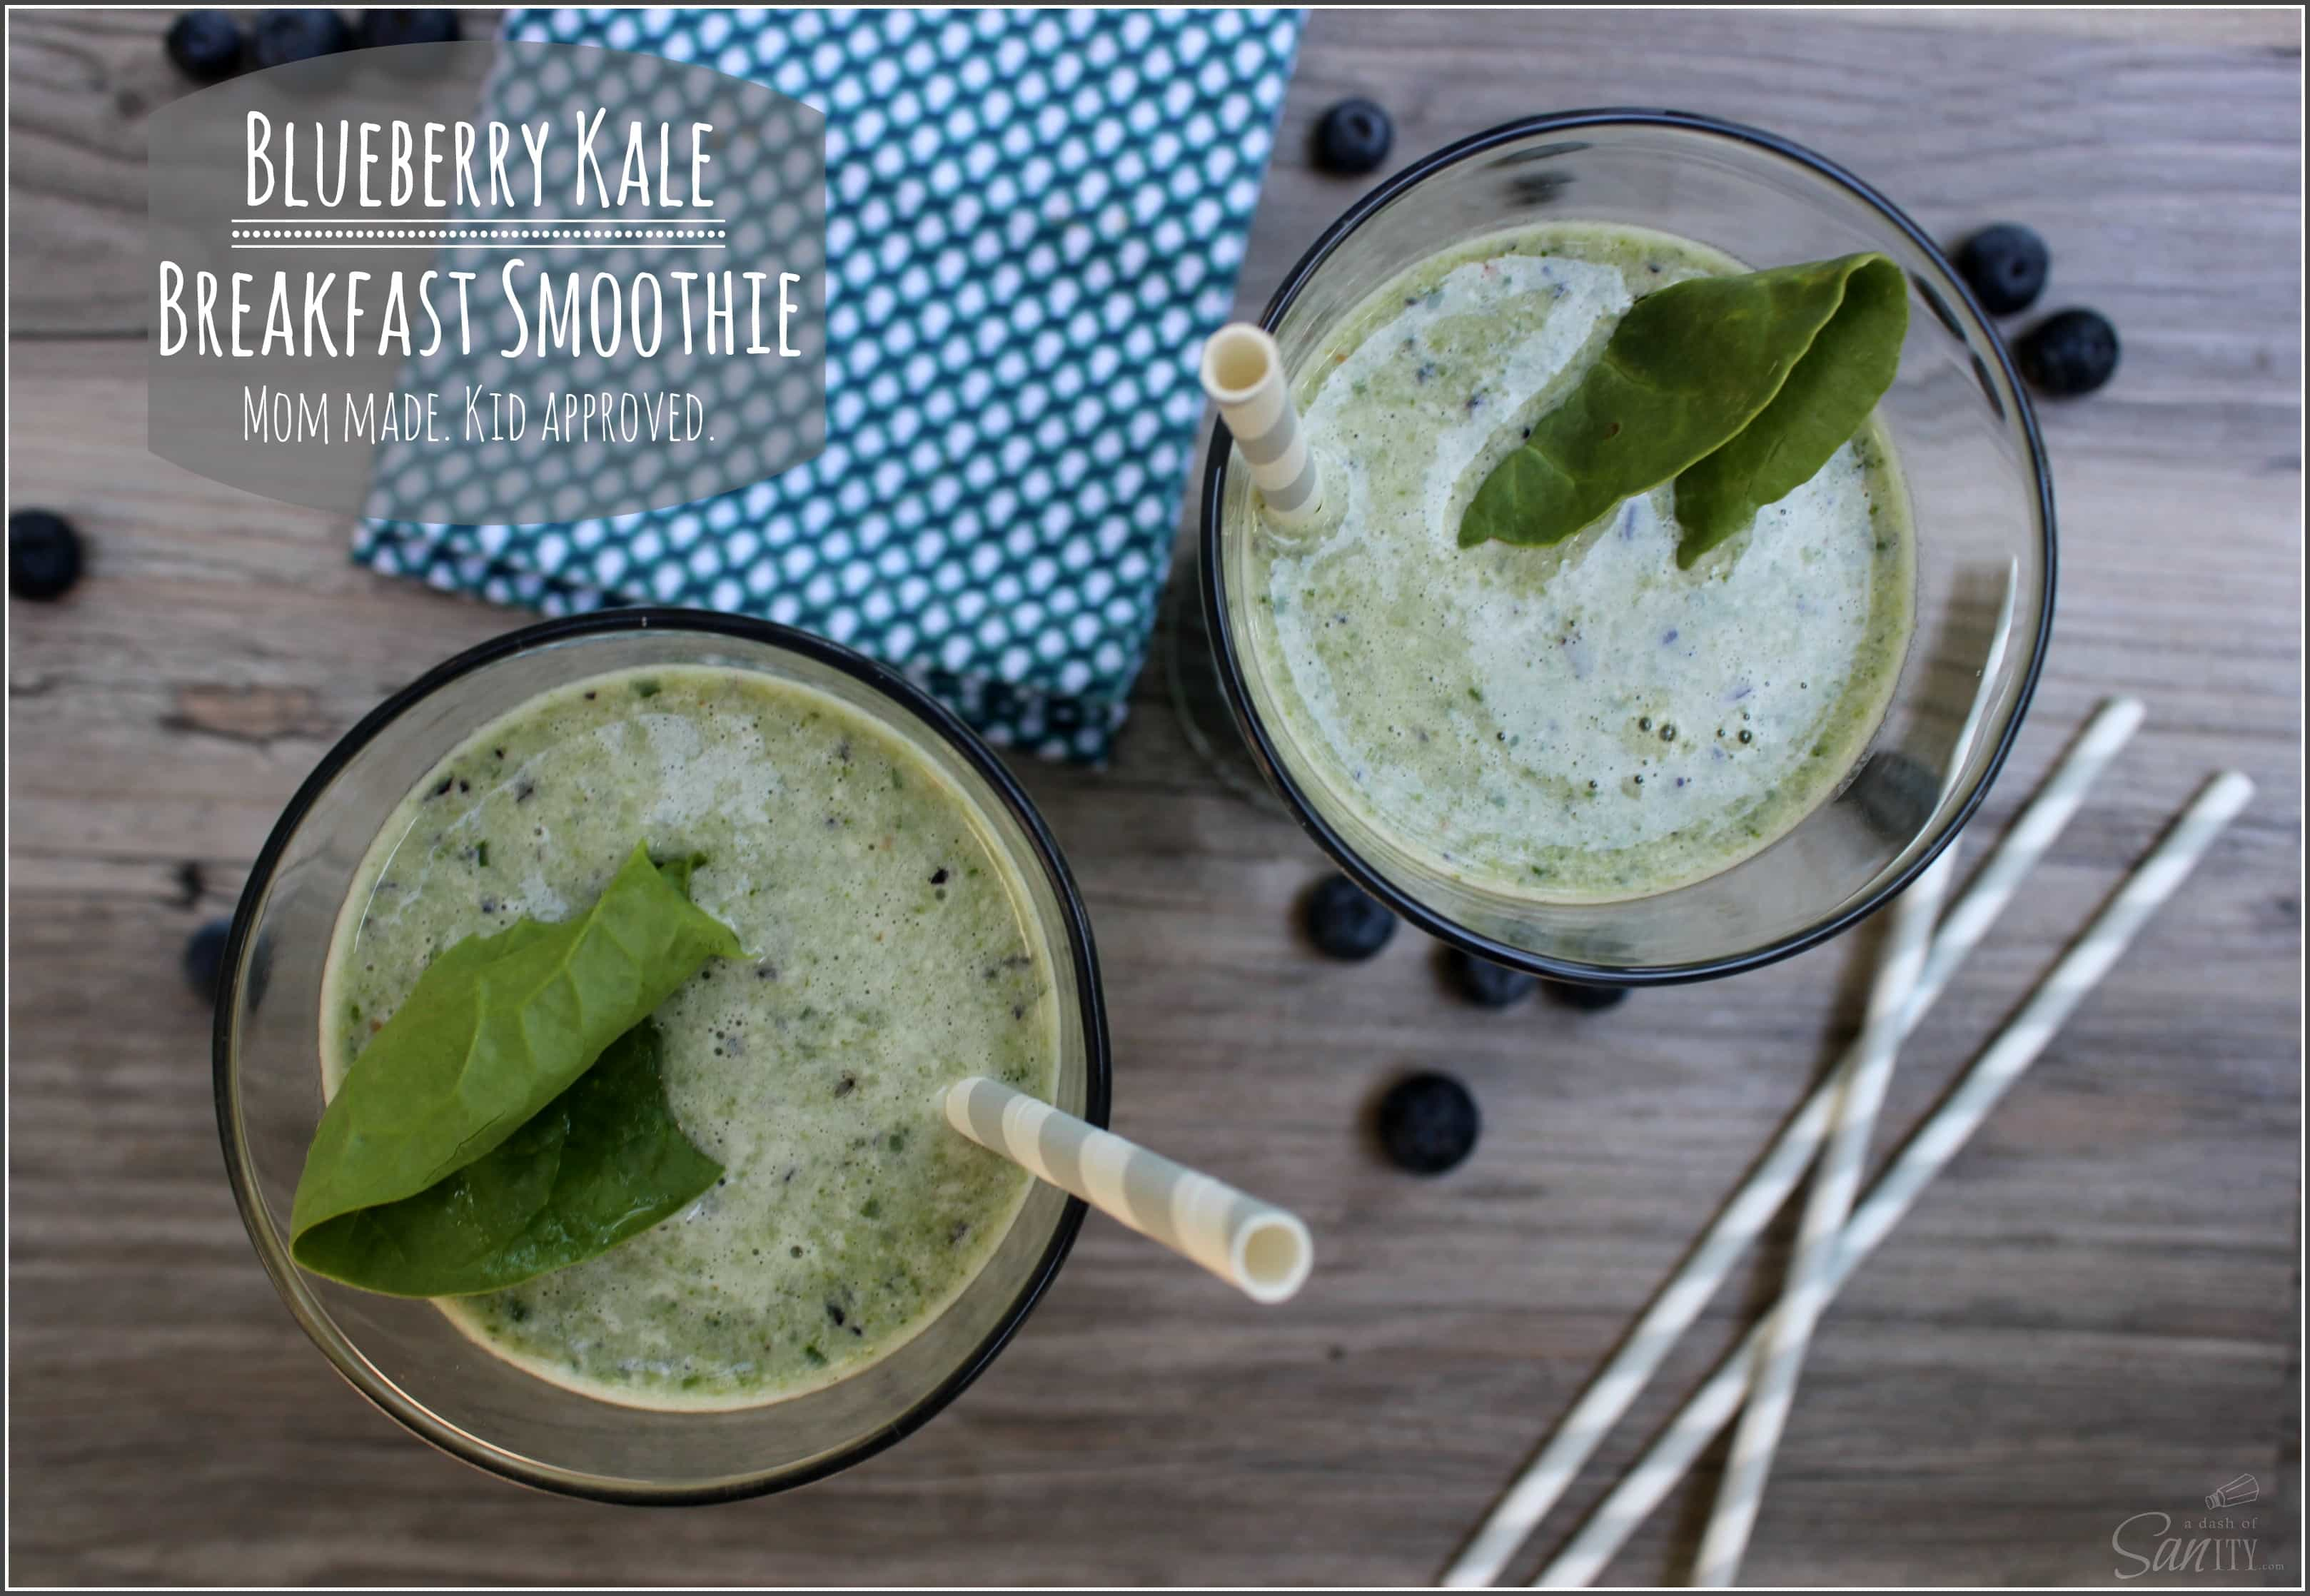 Blueberry Kale Breakfast Smoothie | a.k.a Smurf Smoothie